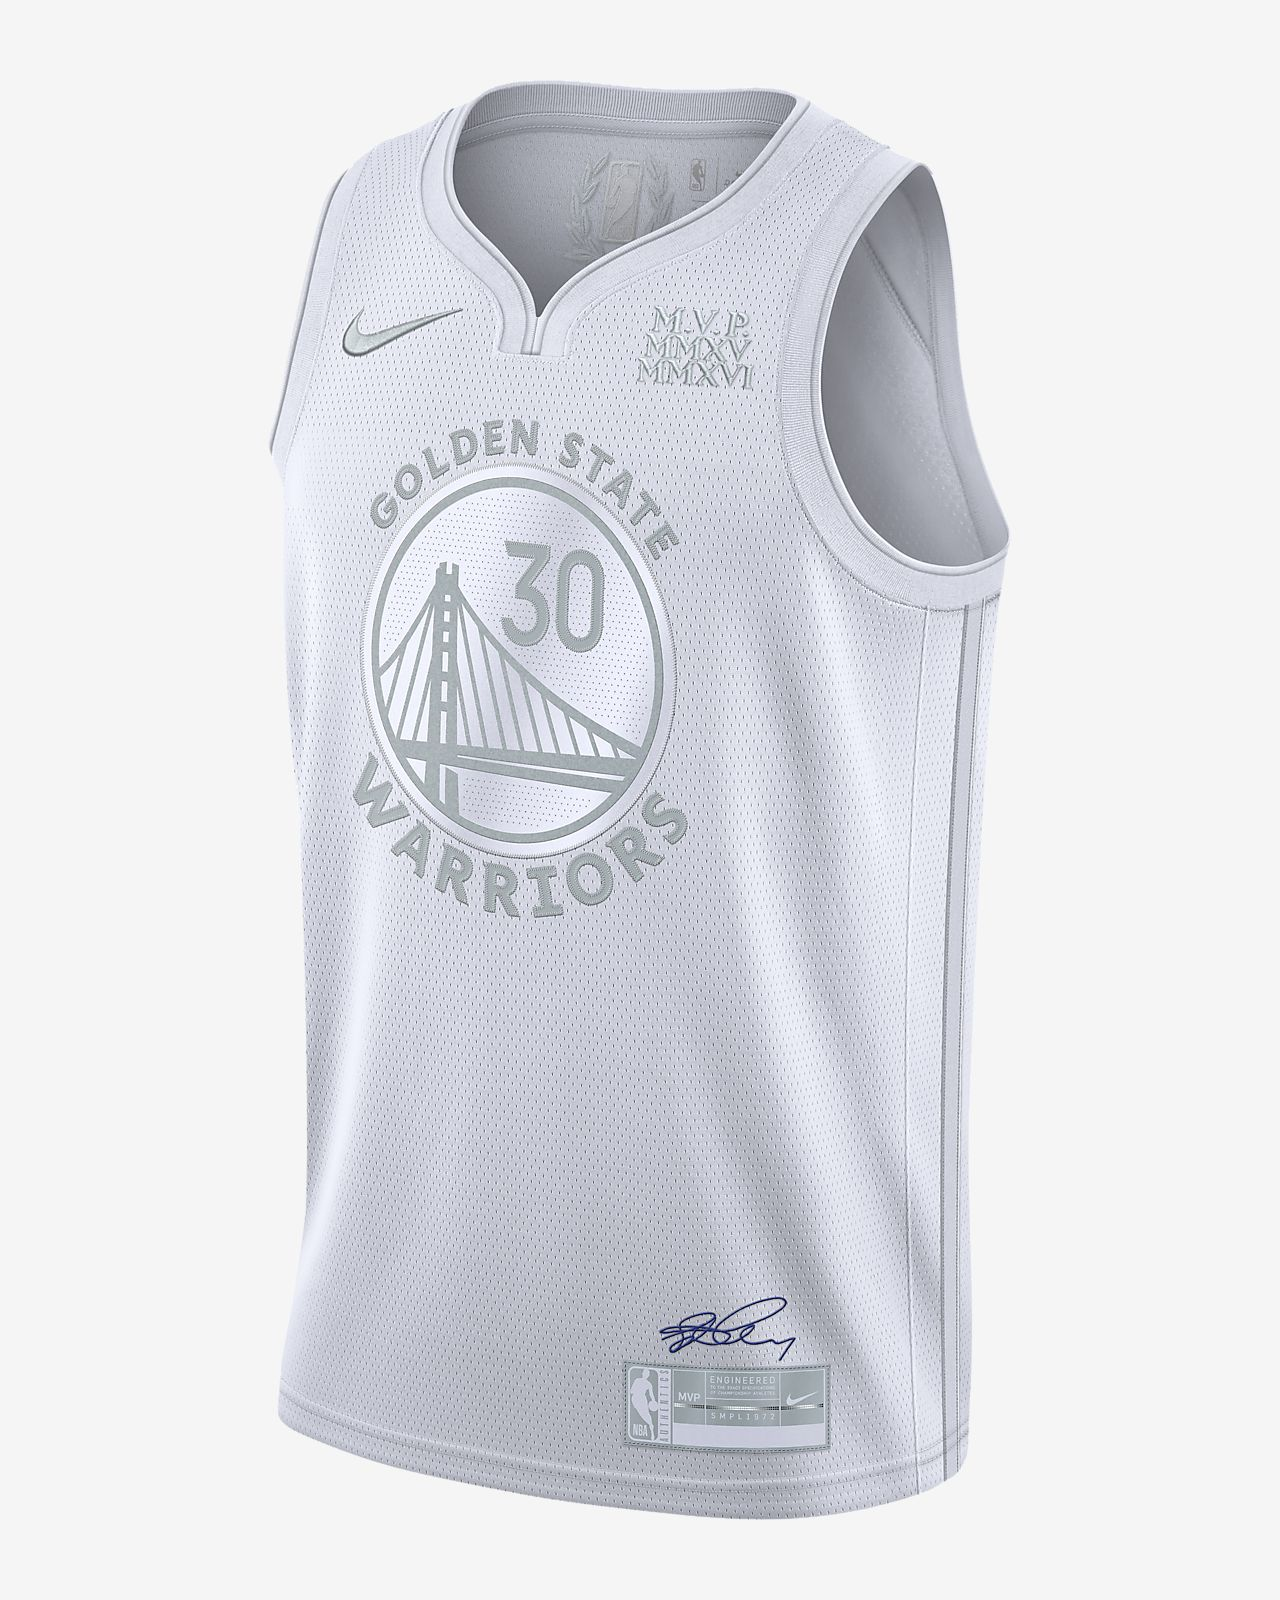 Playera Nike NBA para hombre Stephen Curry Warriors MVP